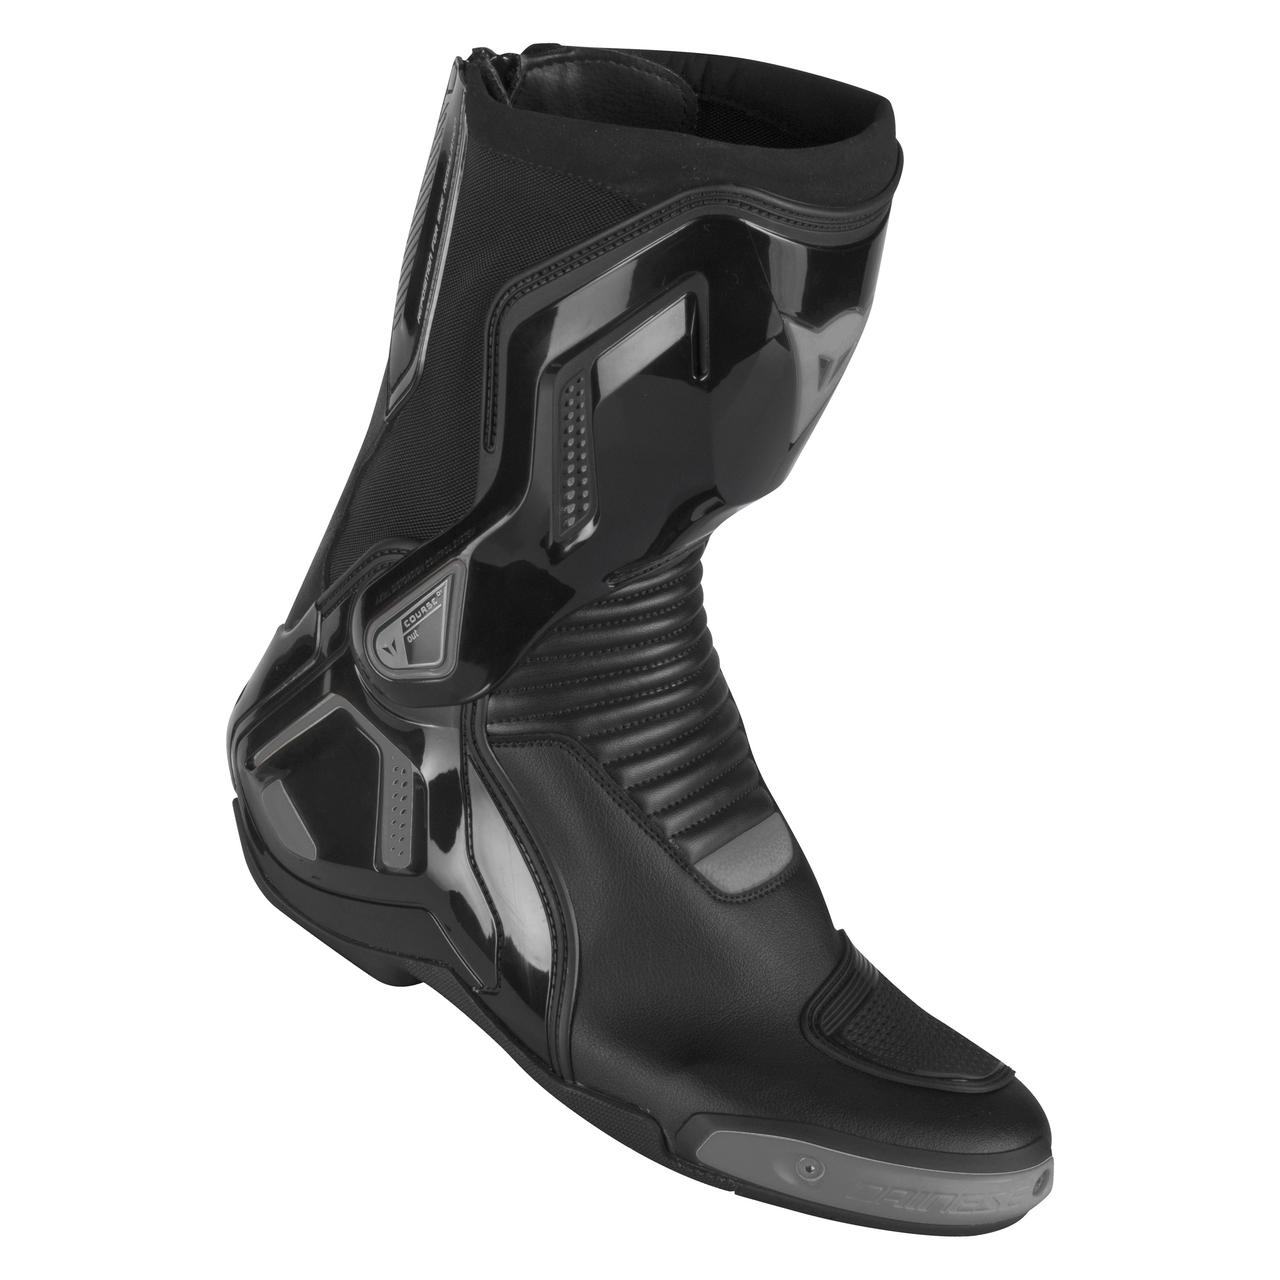 МОТОБОТЫ DAINESE COURSE D1 OUT , 42